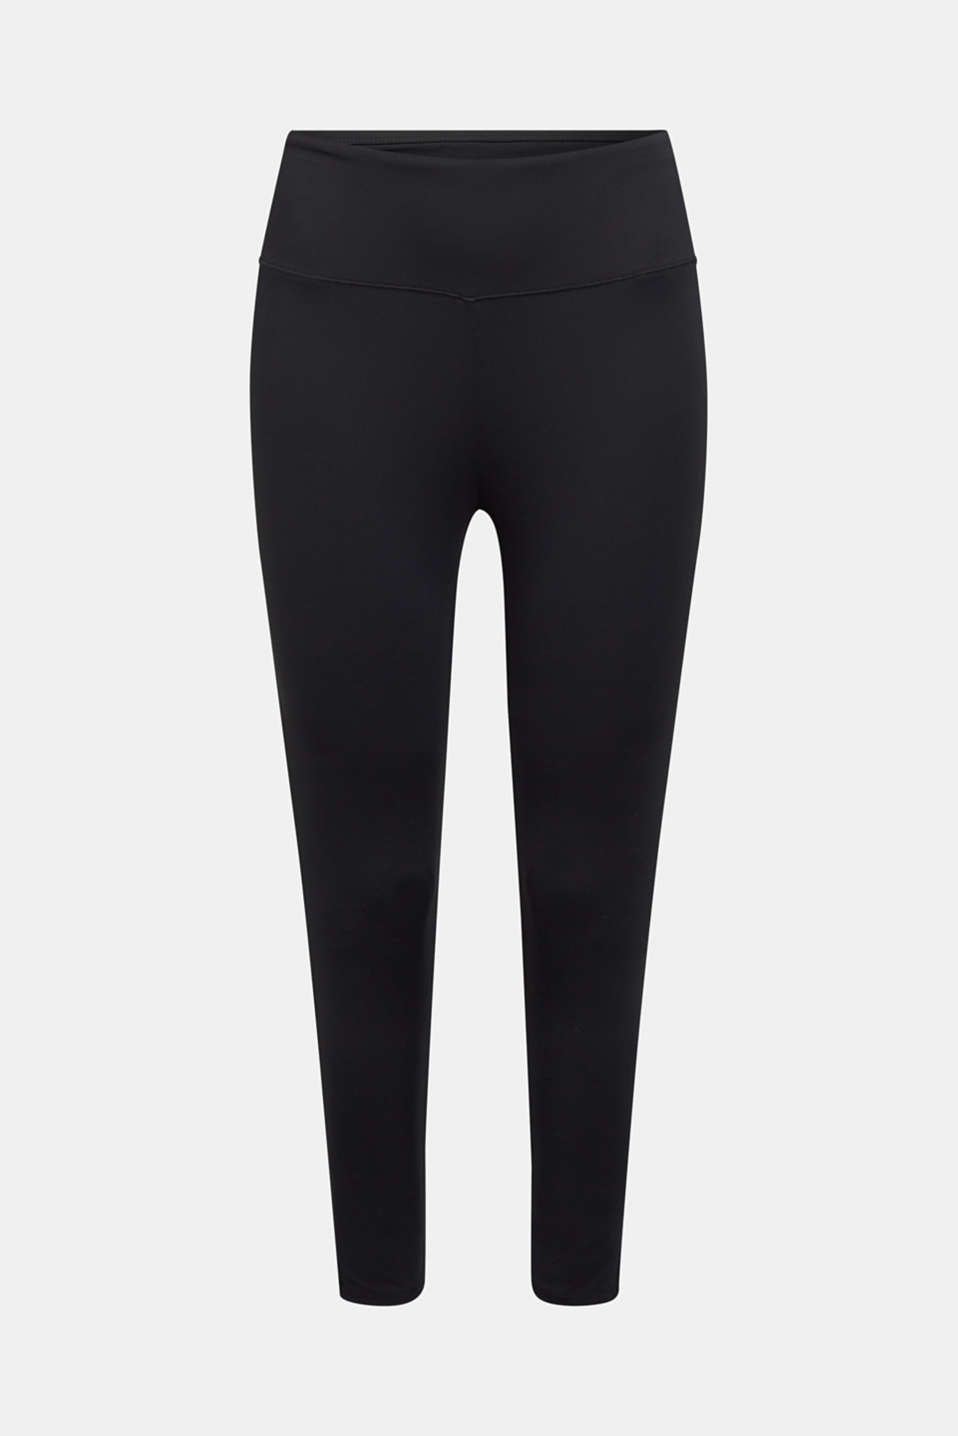 Esprit - Active logo waistband leggings, E-DRY